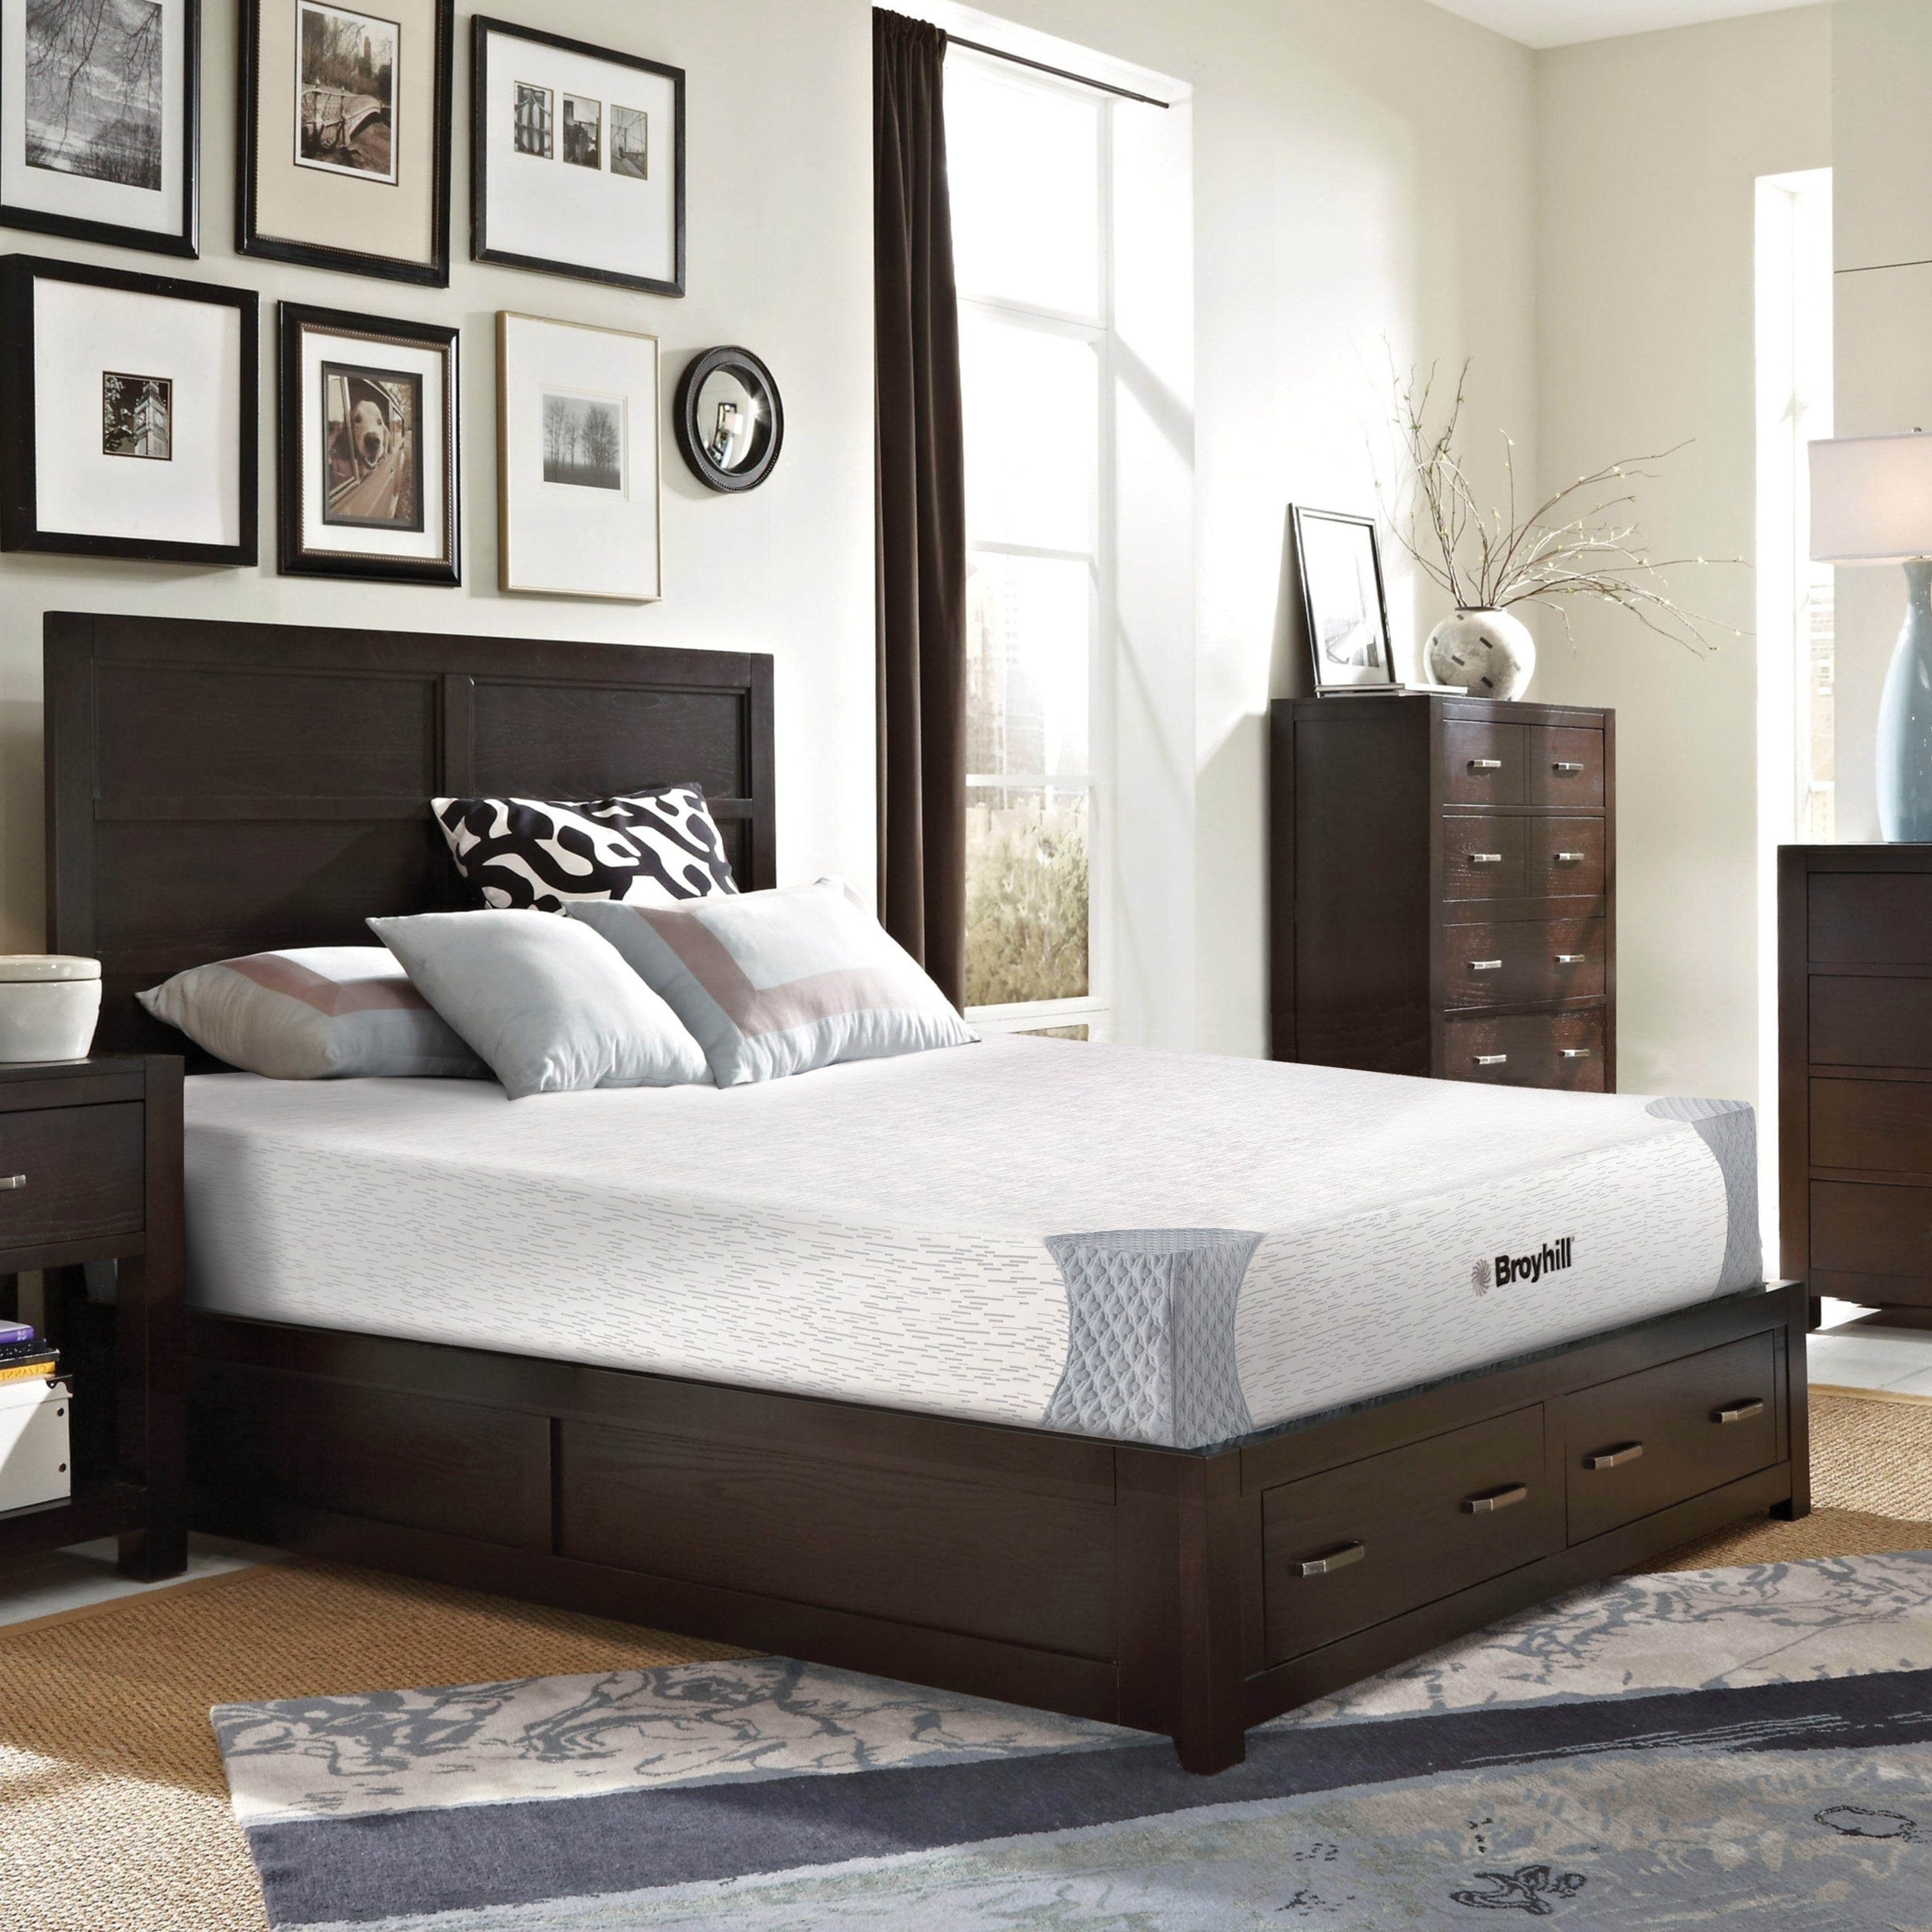 Broyhill Bedroom Furniture Find Great Furniture Deals Shopping At